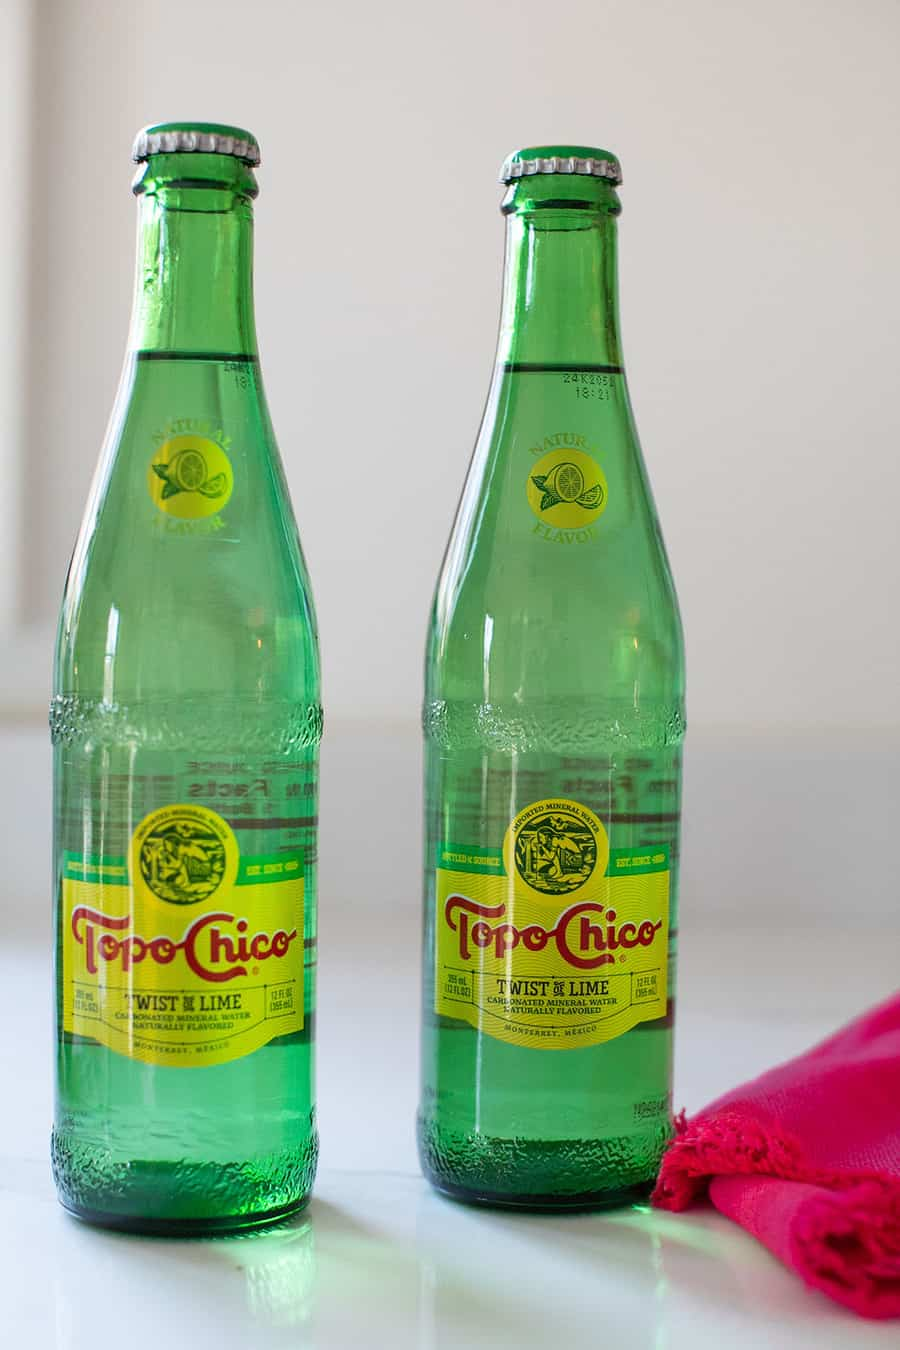 Topo Chico cocktail in a bottle